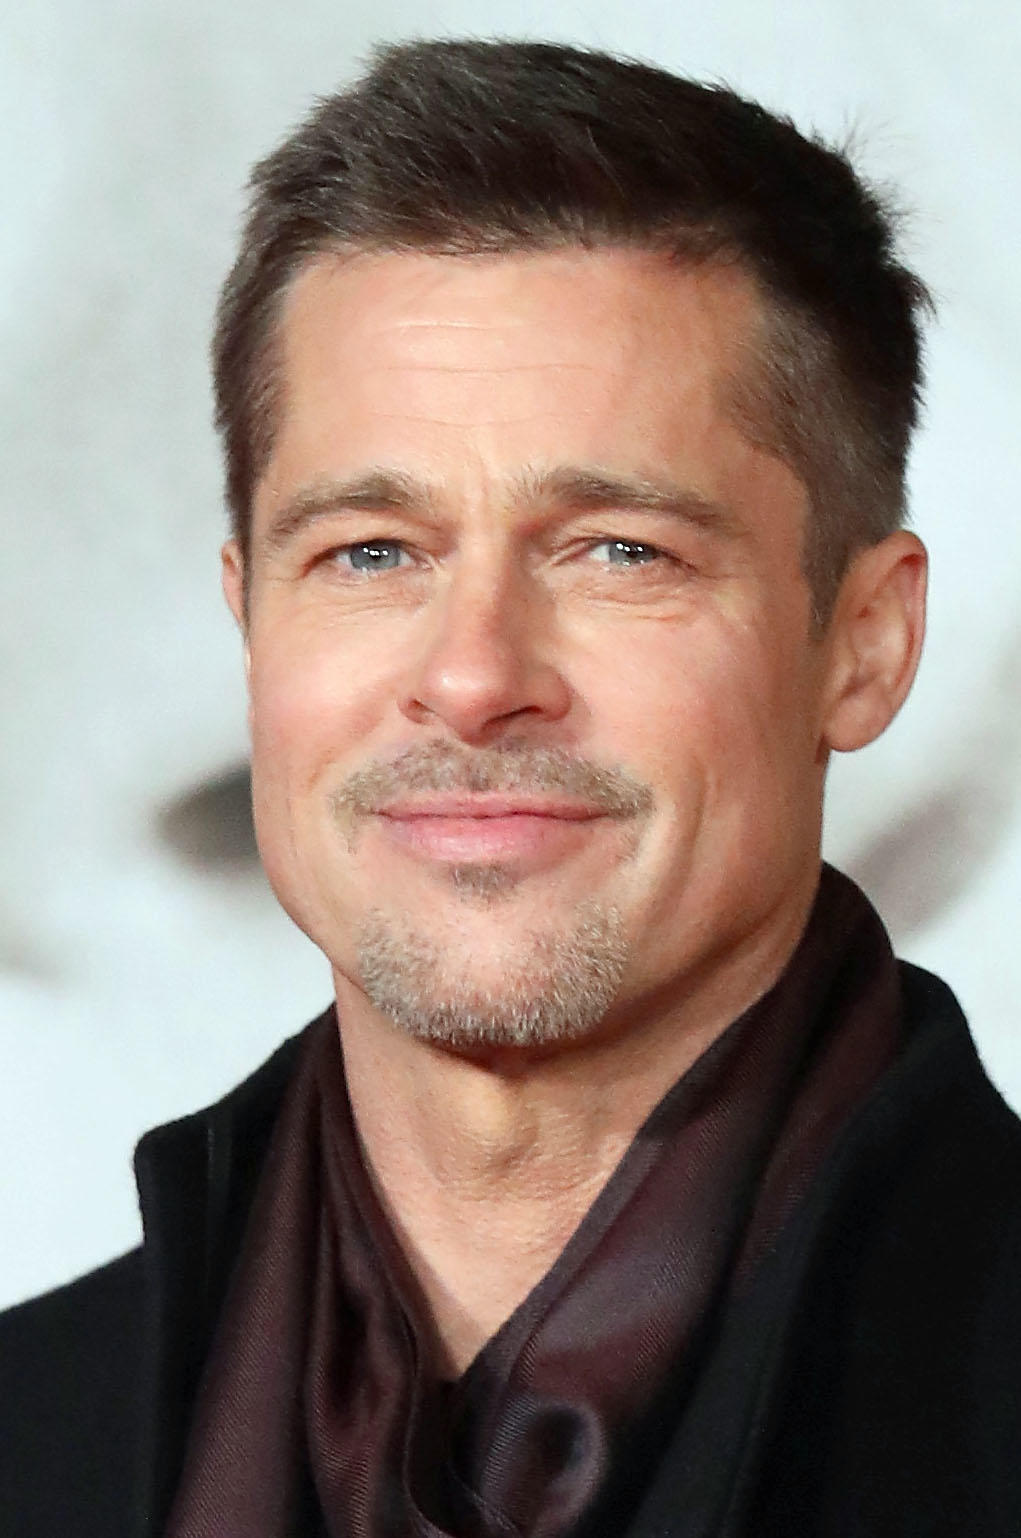 Brad Pitt at the UK premiere of